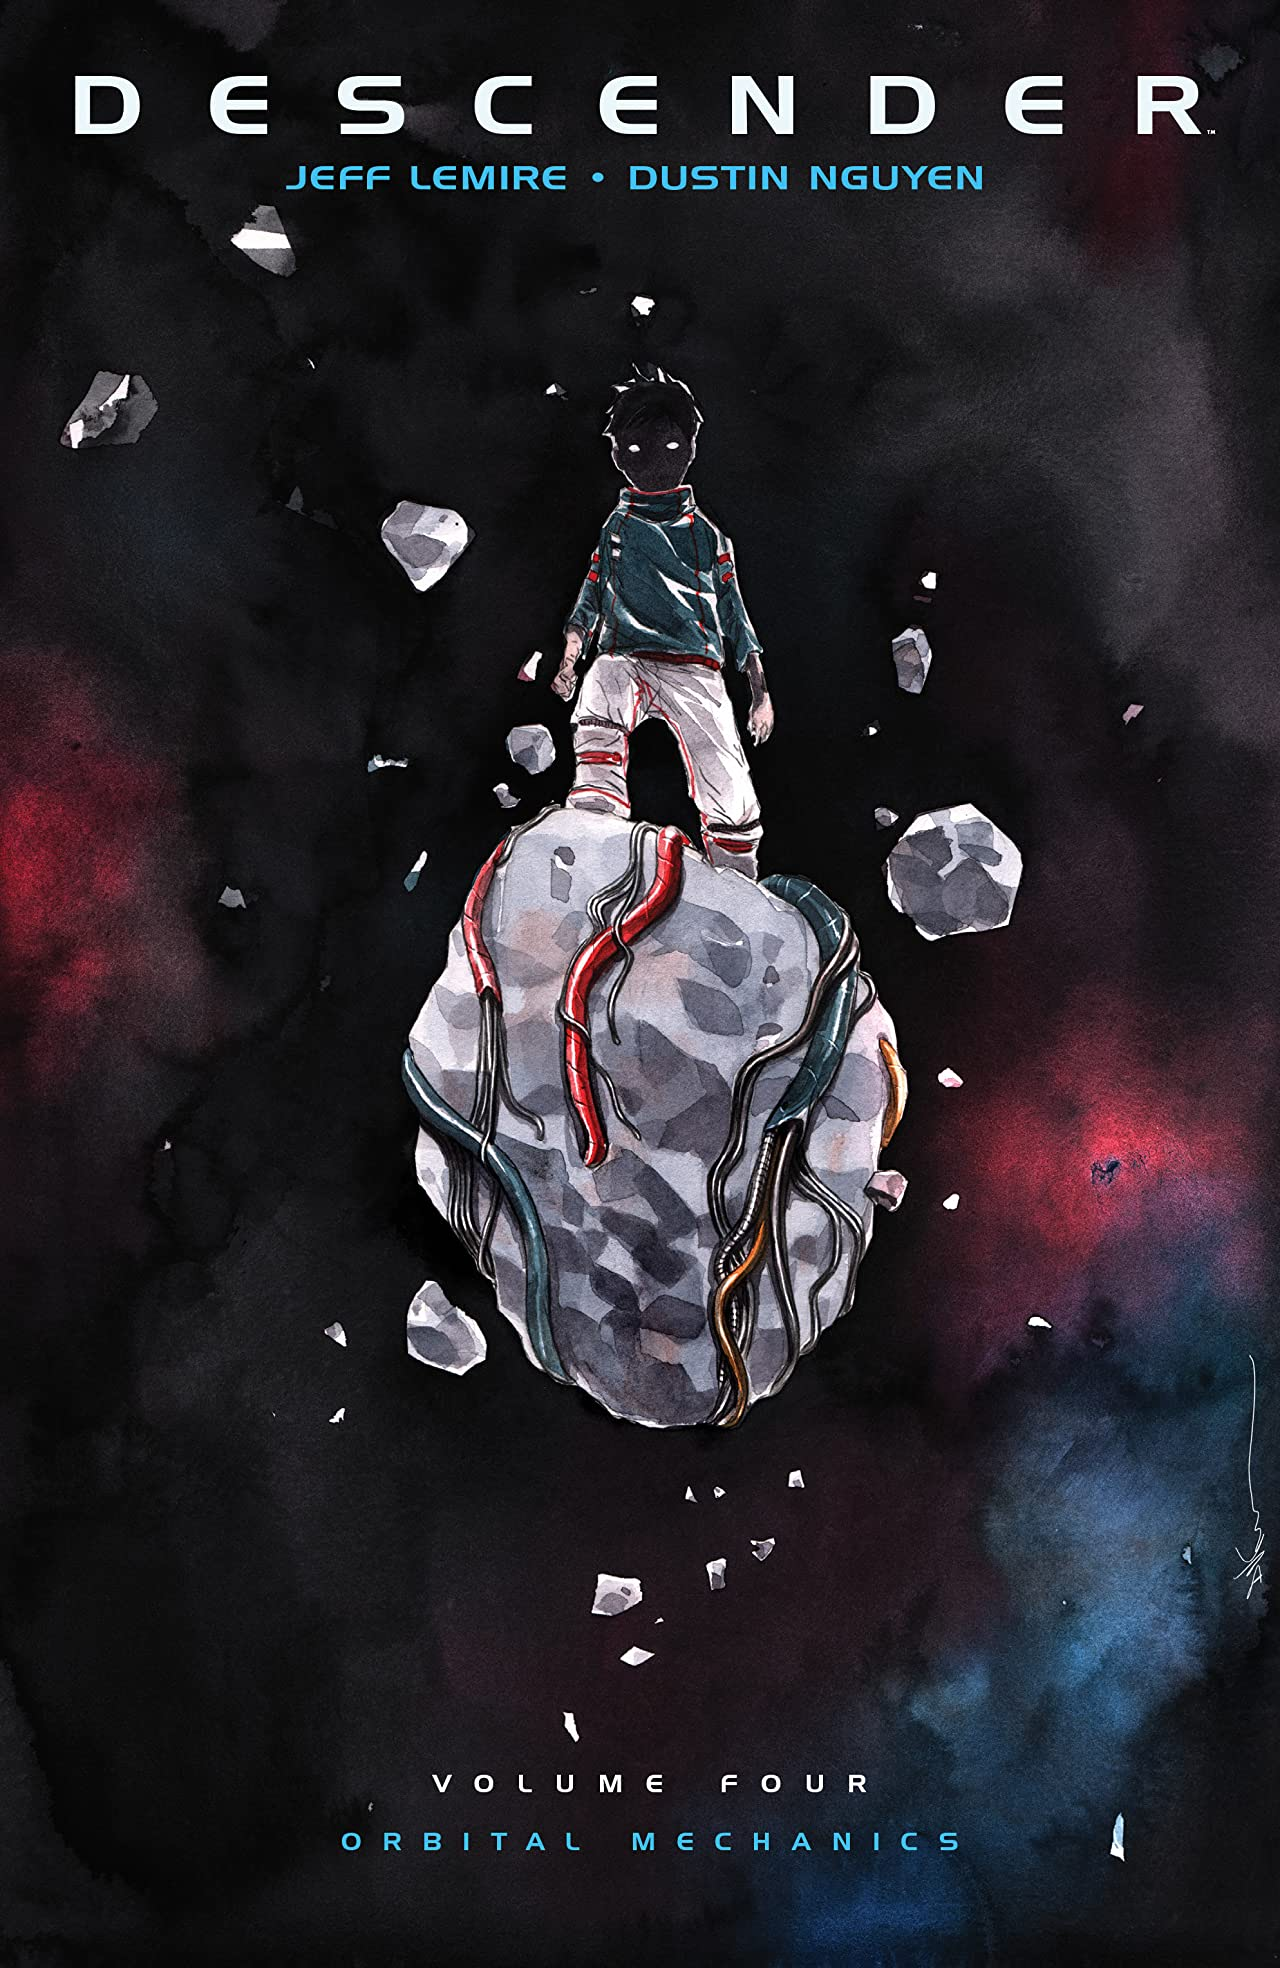 Descender Vol. 4: Orbital Mechanics